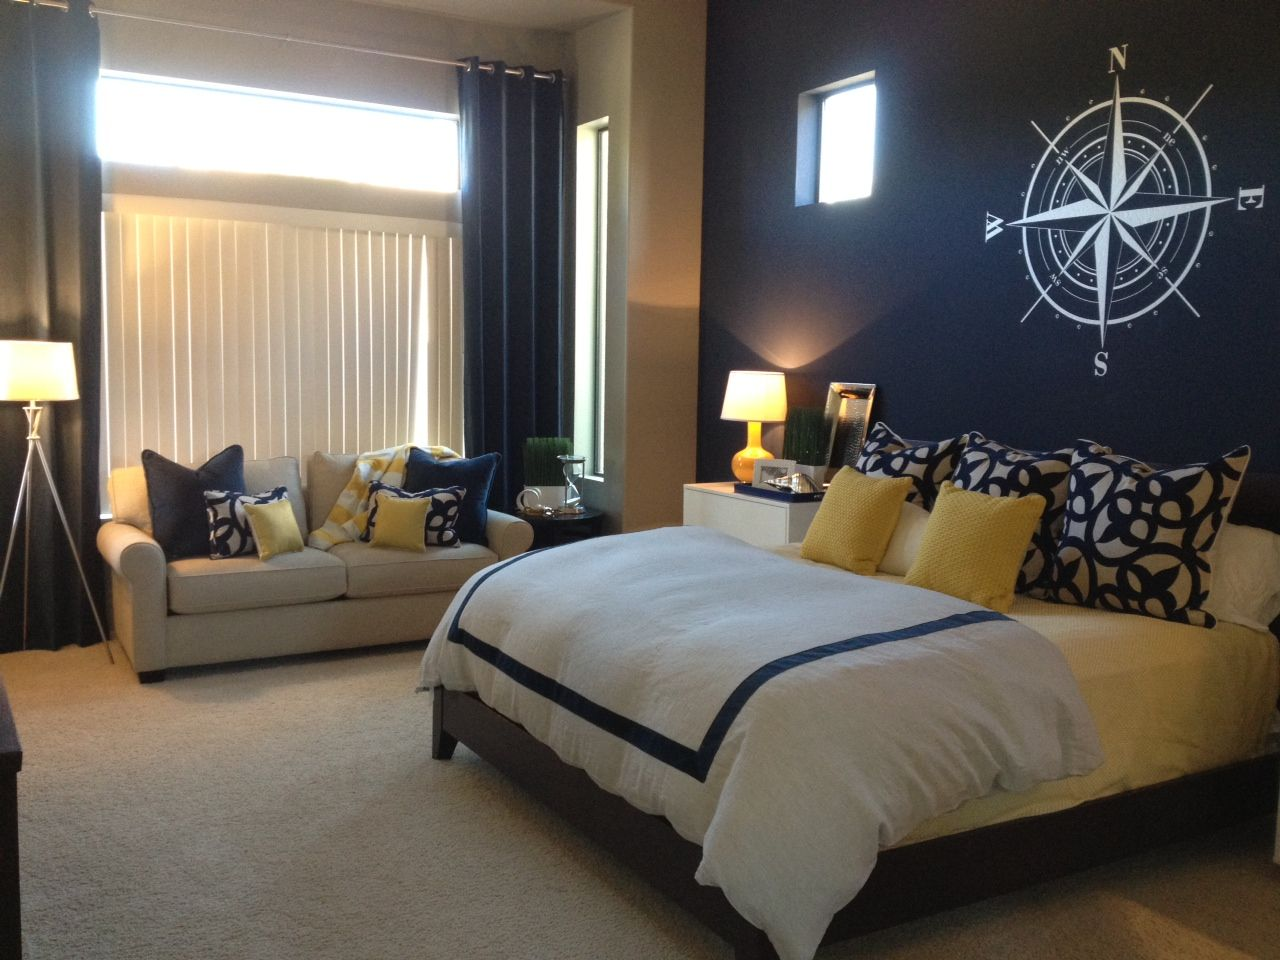 Nautical themed bedroom decor – Bedroom at Real Estate